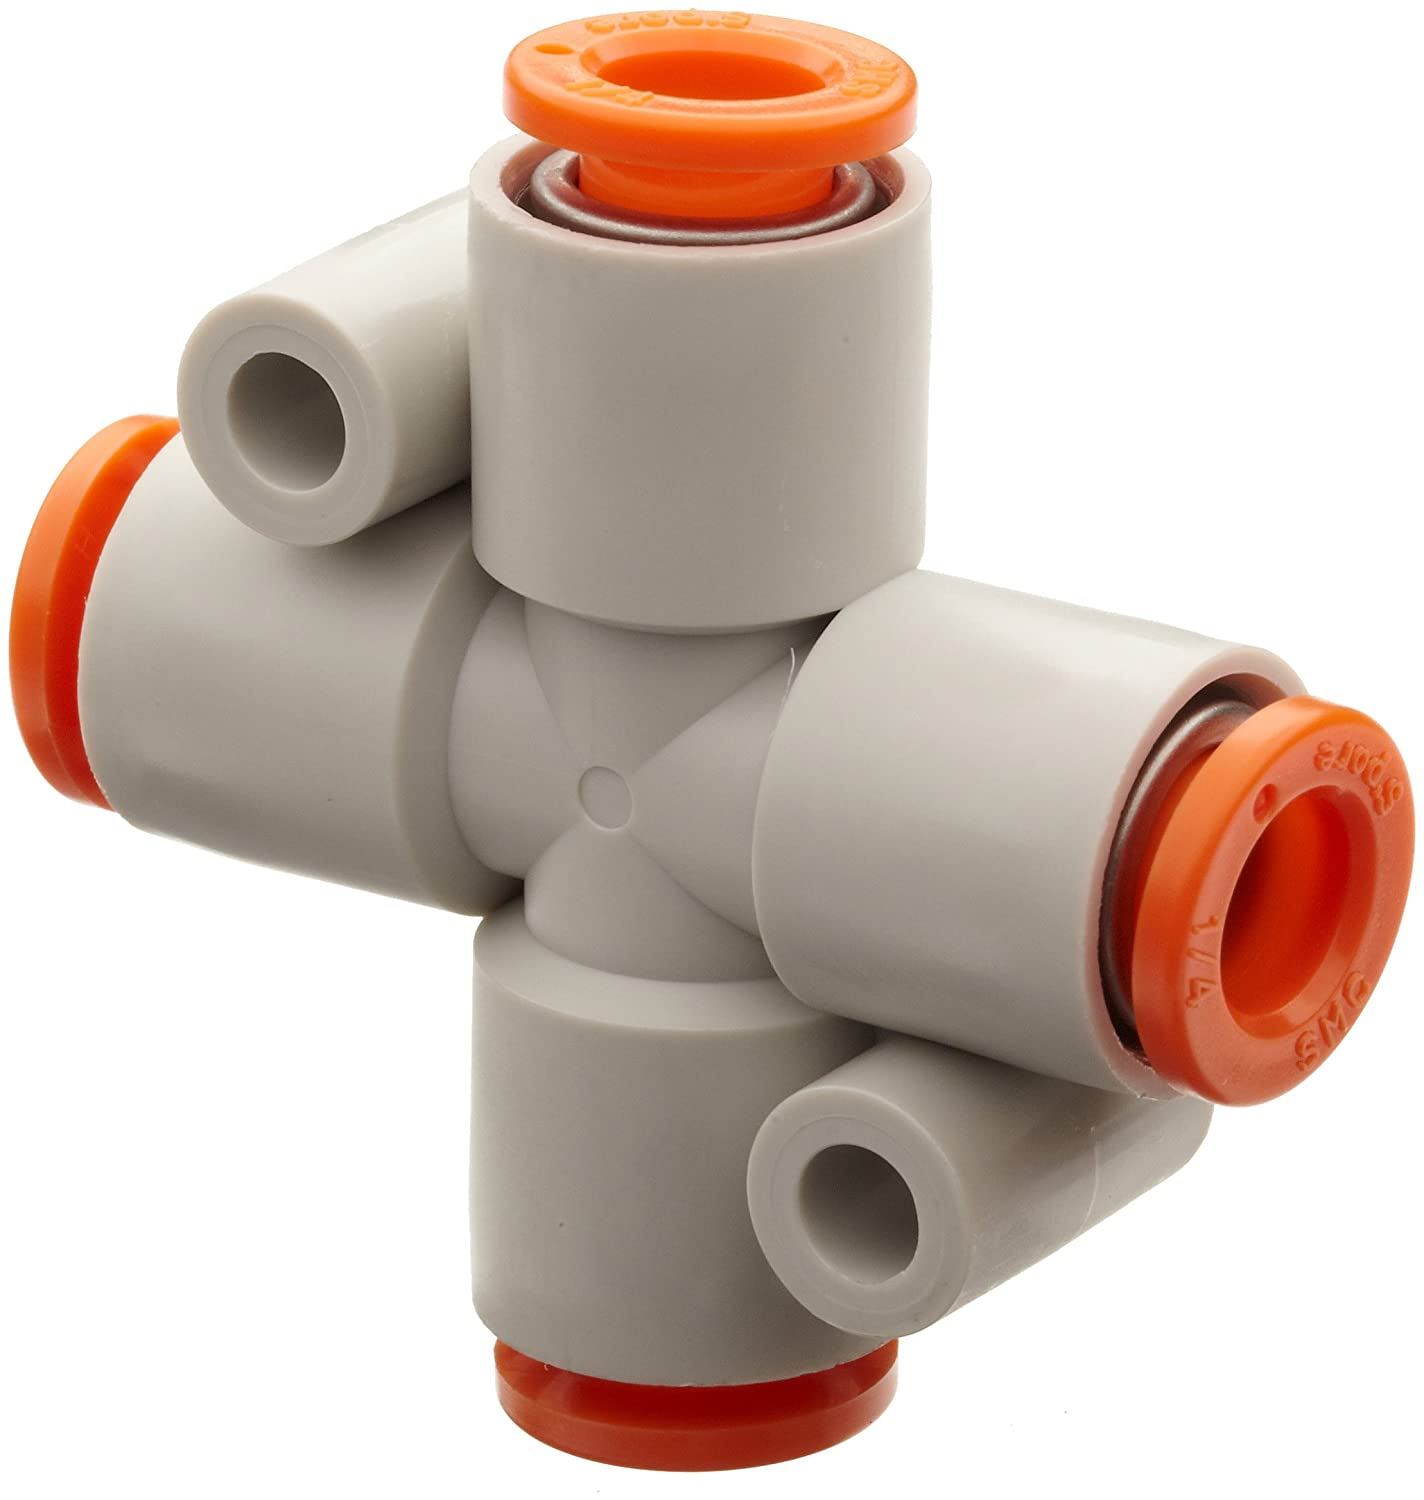 Max Max 84% OFF 64% OFF SMC KQ2TW07-00A PBT Push-to-Connect Tube Cross 1 Fitting Tu 4